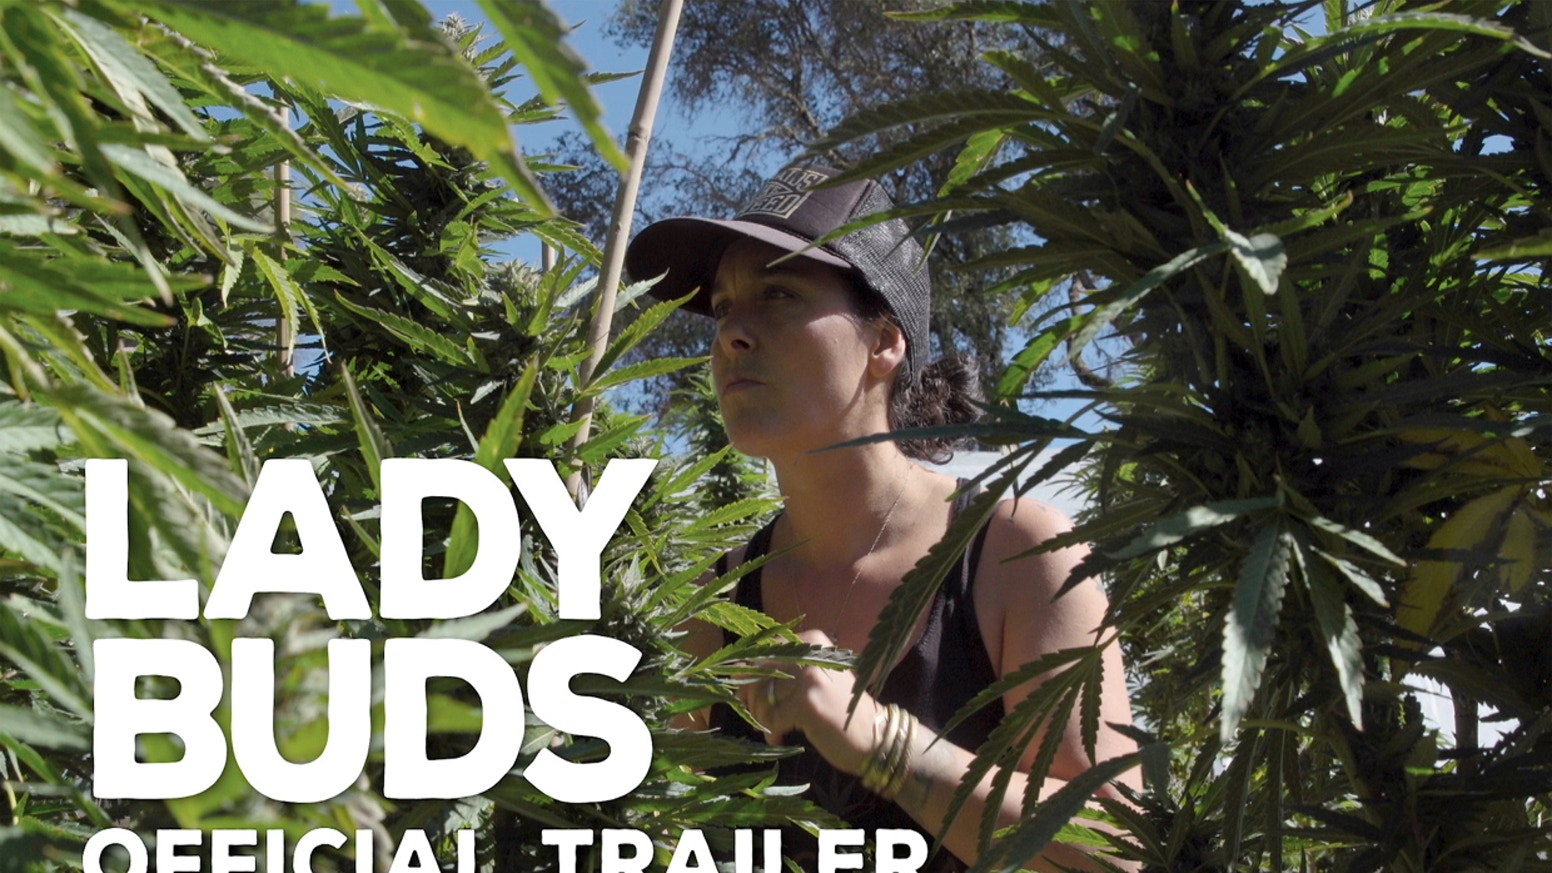 Six women emerge from the shadows of the California cannabis industry to get legal. But with corporate weed booming, who will survive?